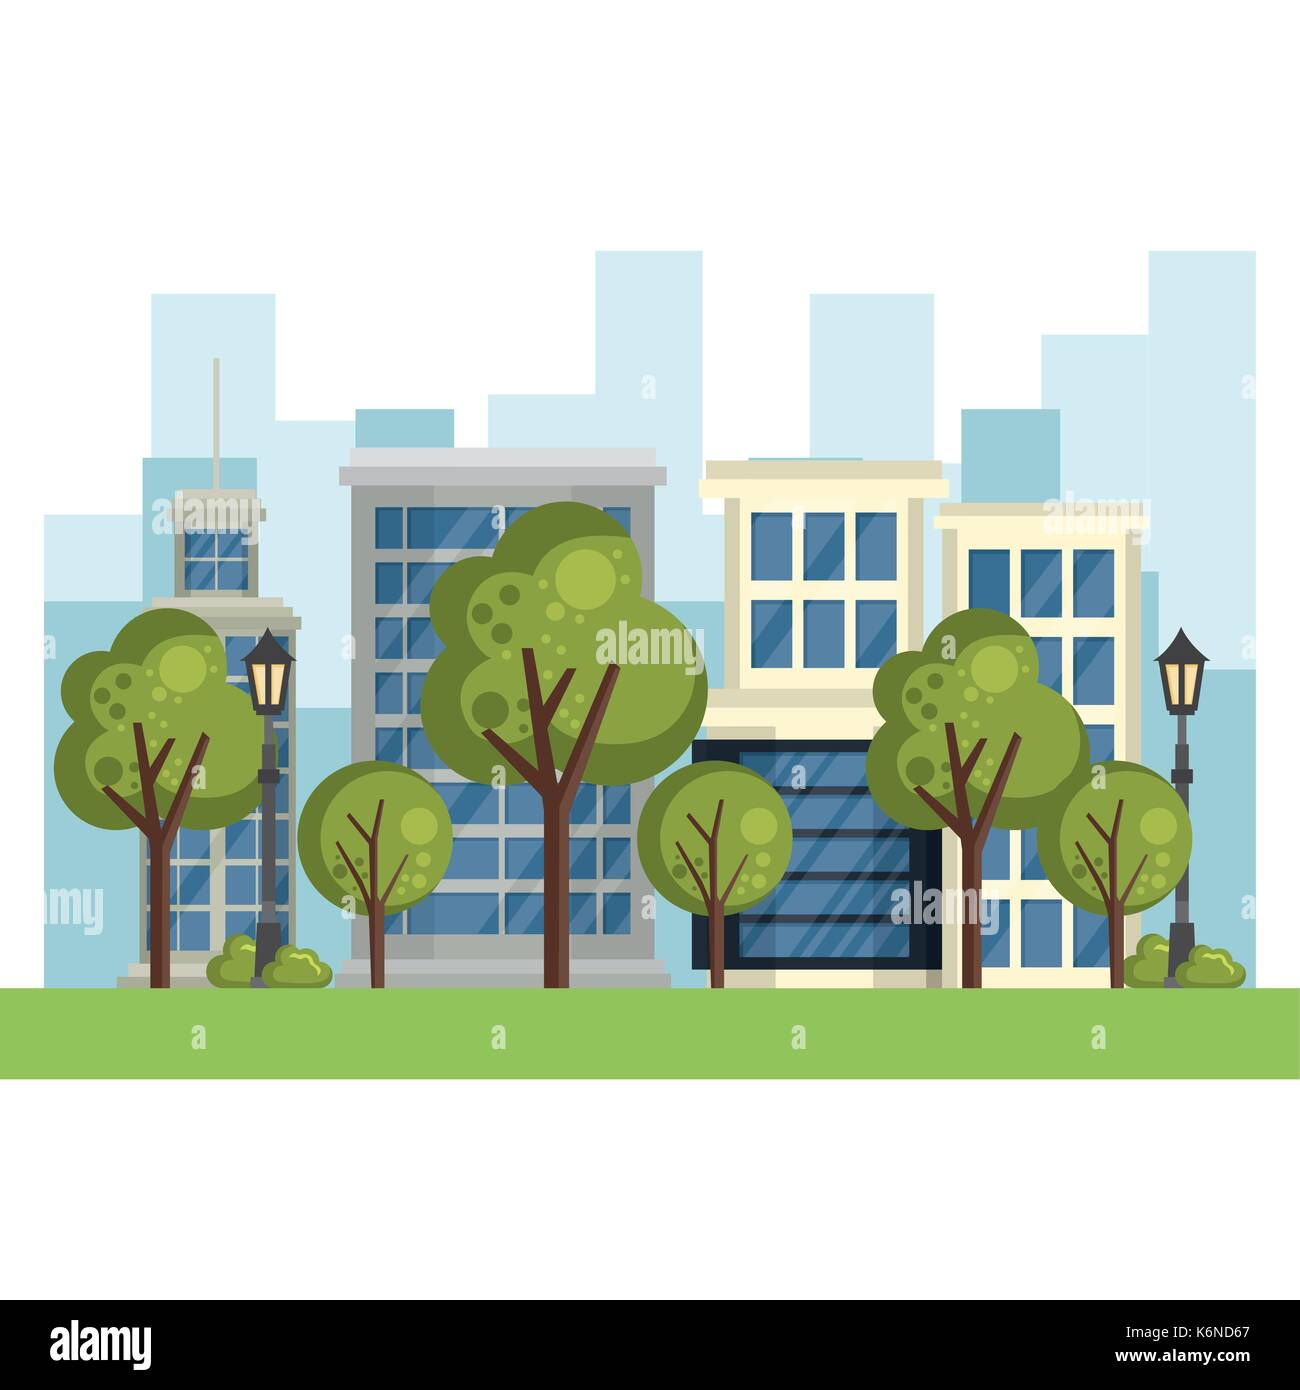 buildings with cityscape scene - Stock Image